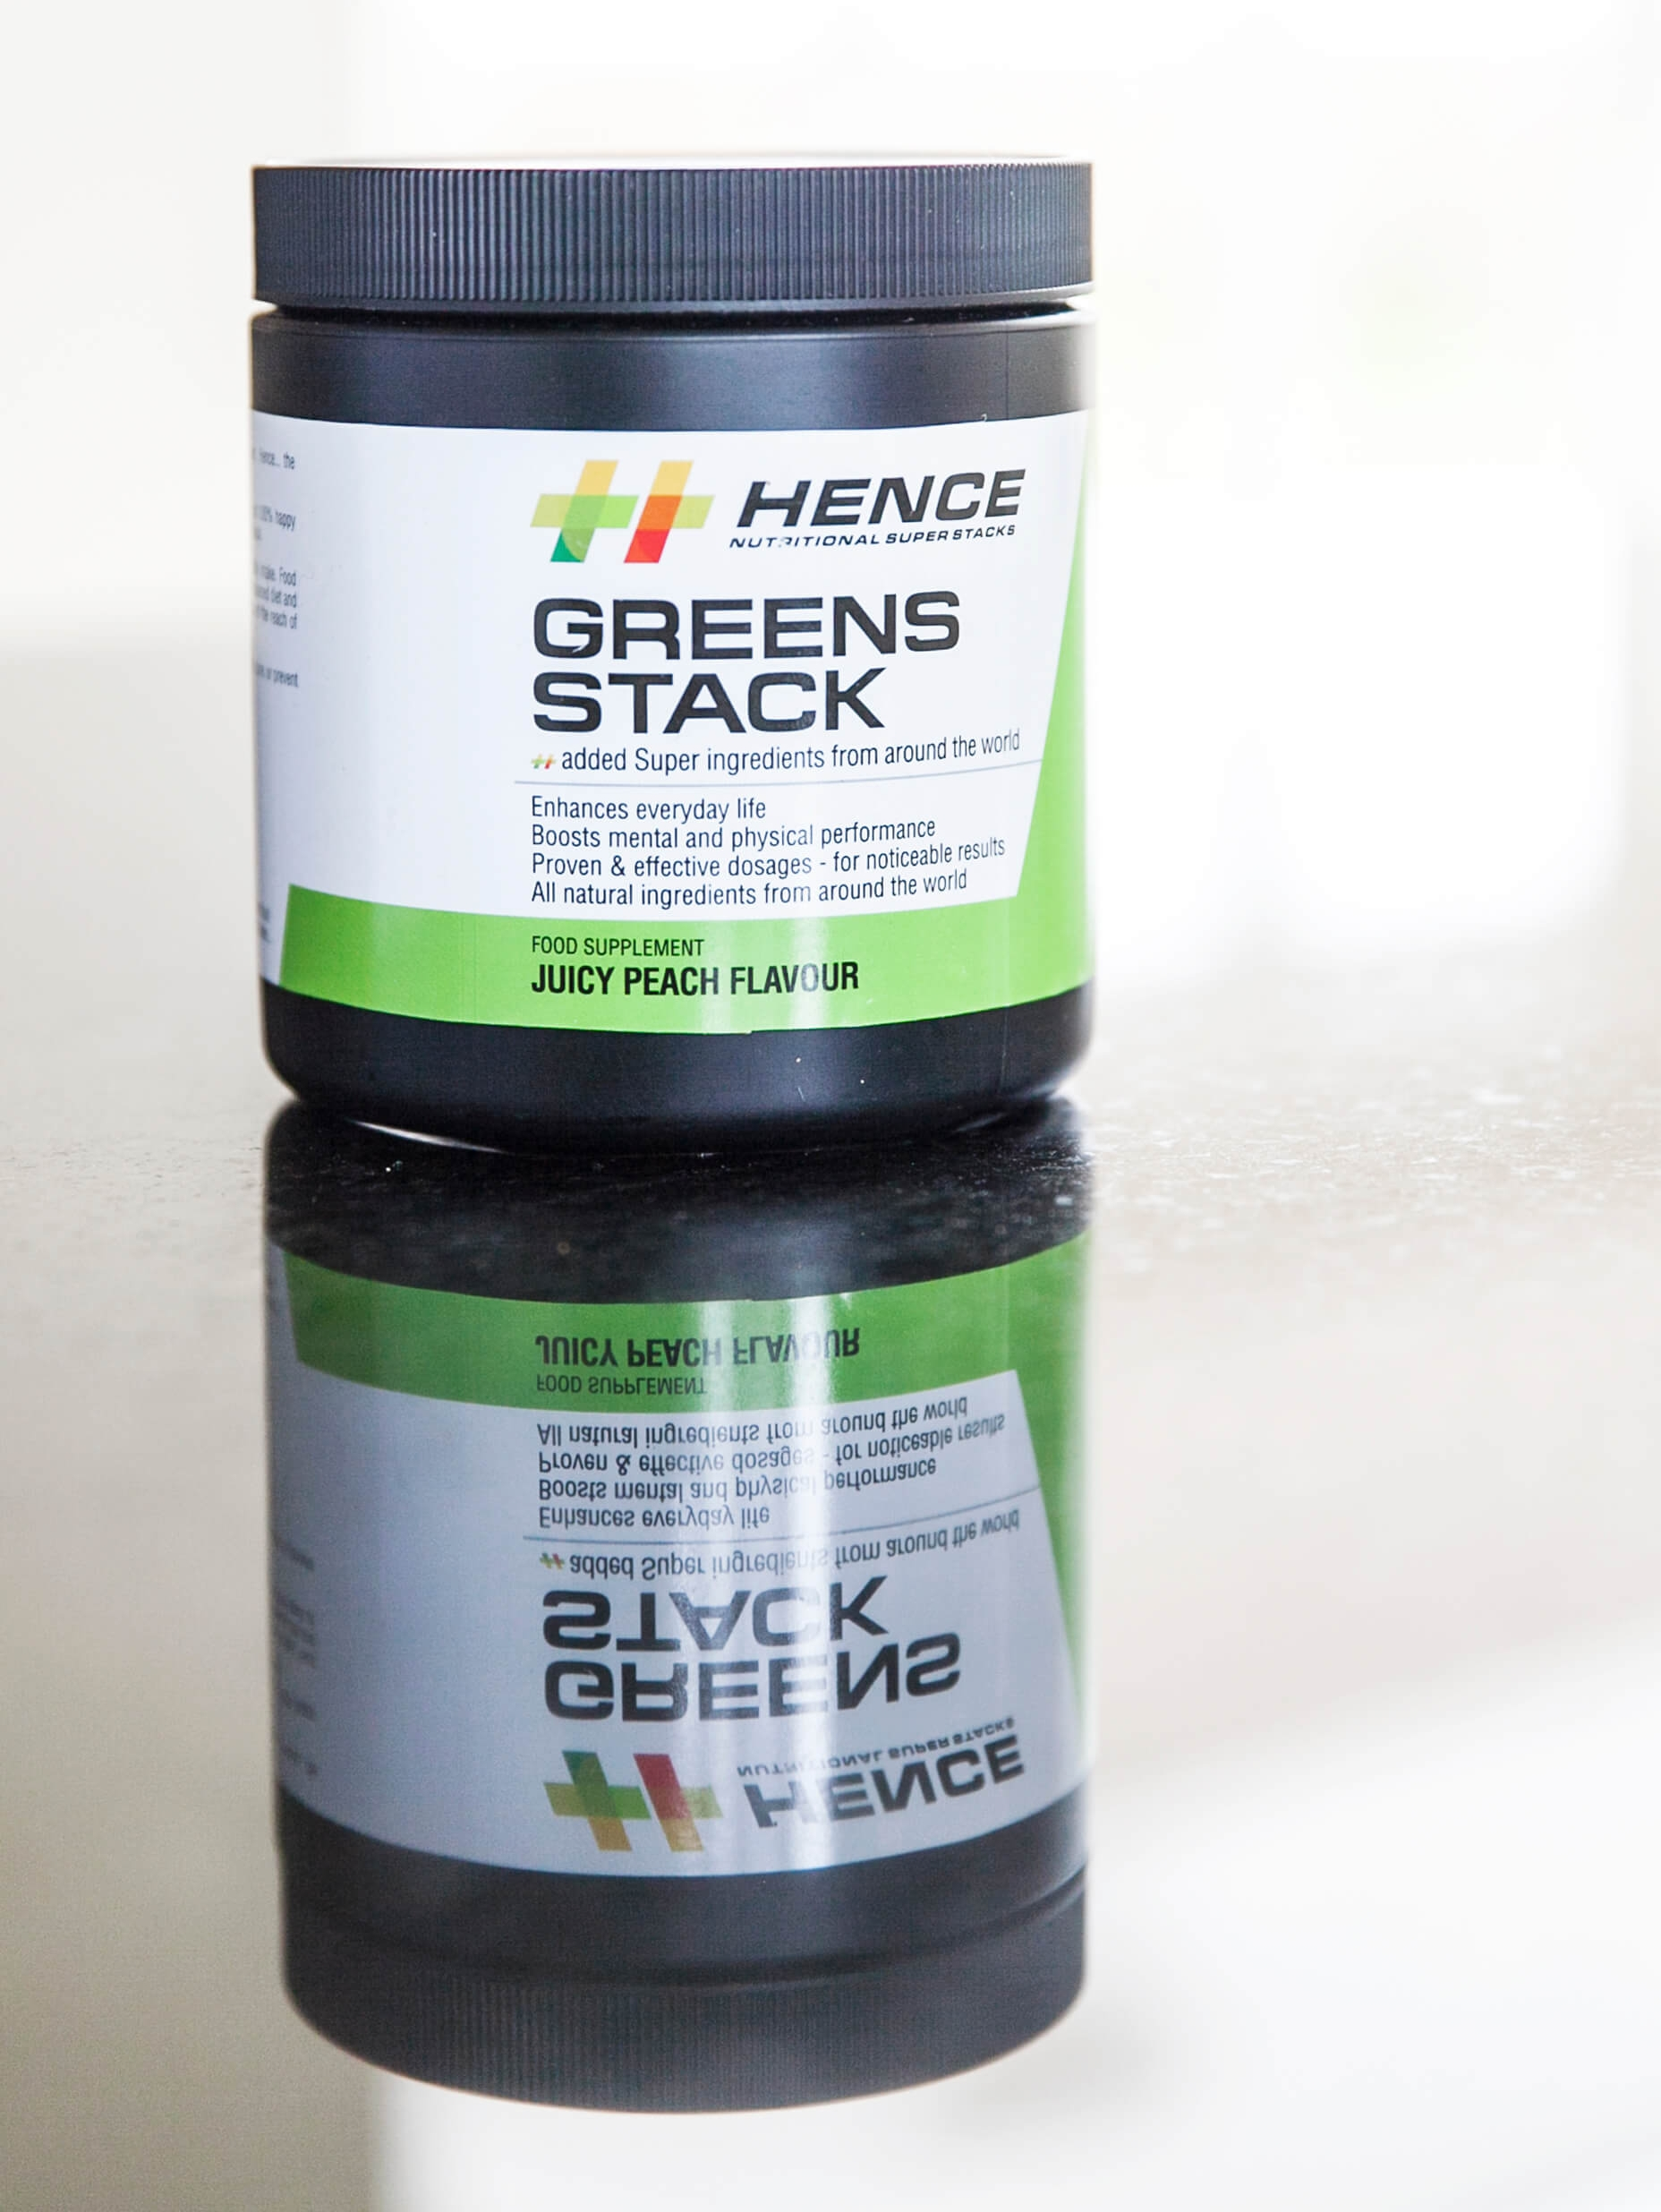 GREENS STACKS Proven natural Ingredients. Only. - Pyhtonutrients - proven natural Ingredients. Only.No fillers, Duds or artificial sweeteners.Stevia sweet & Peach flavour - Just enough to help wash it down.antioxidants & adaptogens bespoke blend